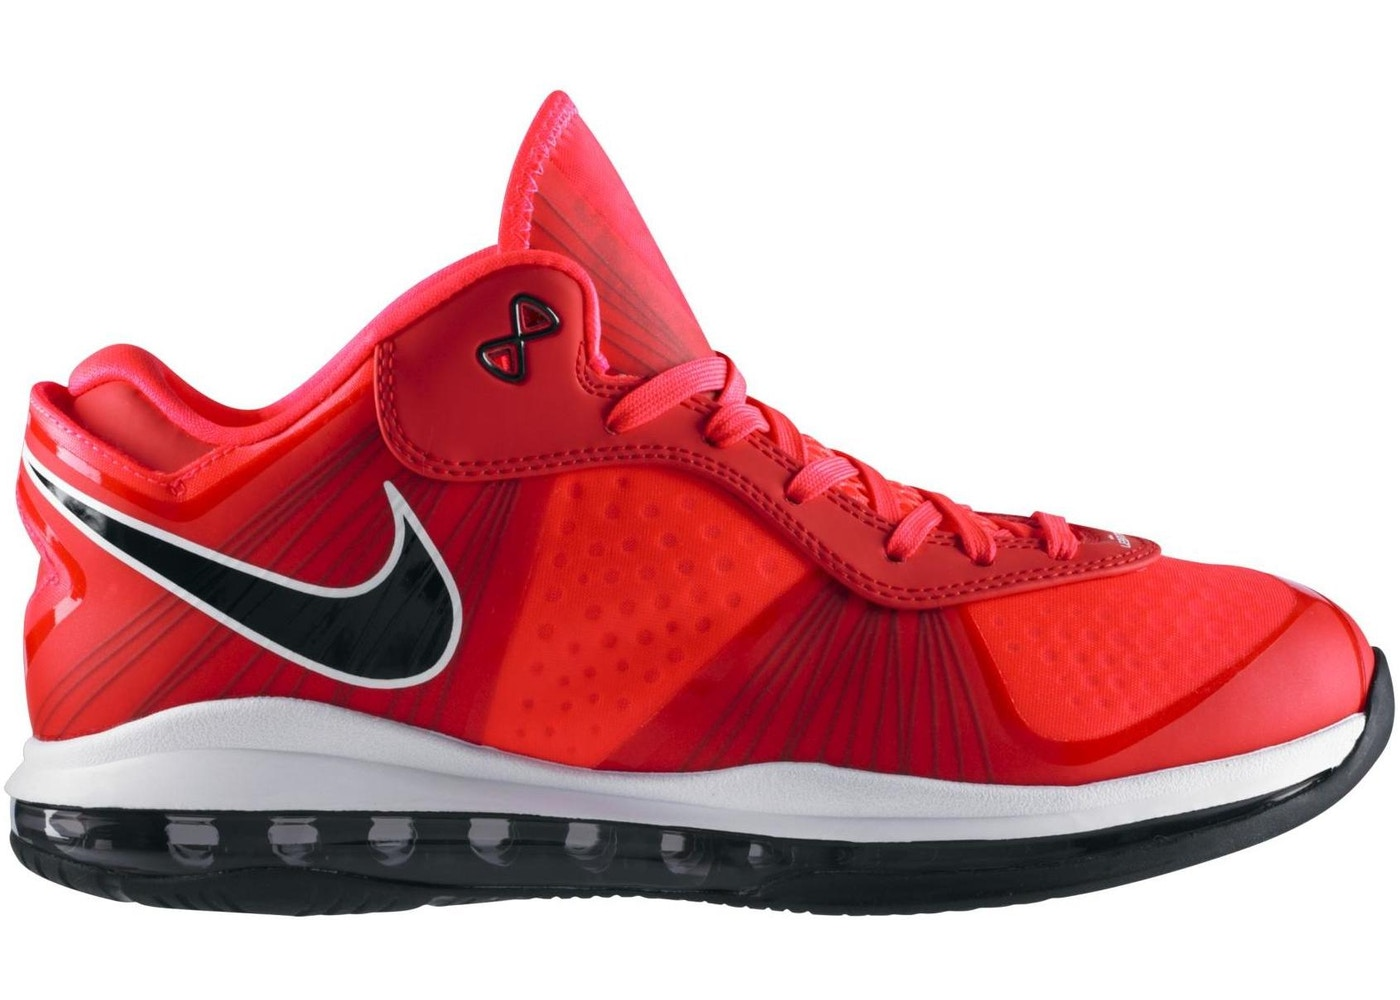 online store fdf99 6fba0 Buy Nike LeBron Shoes   Deadstock Sneakers